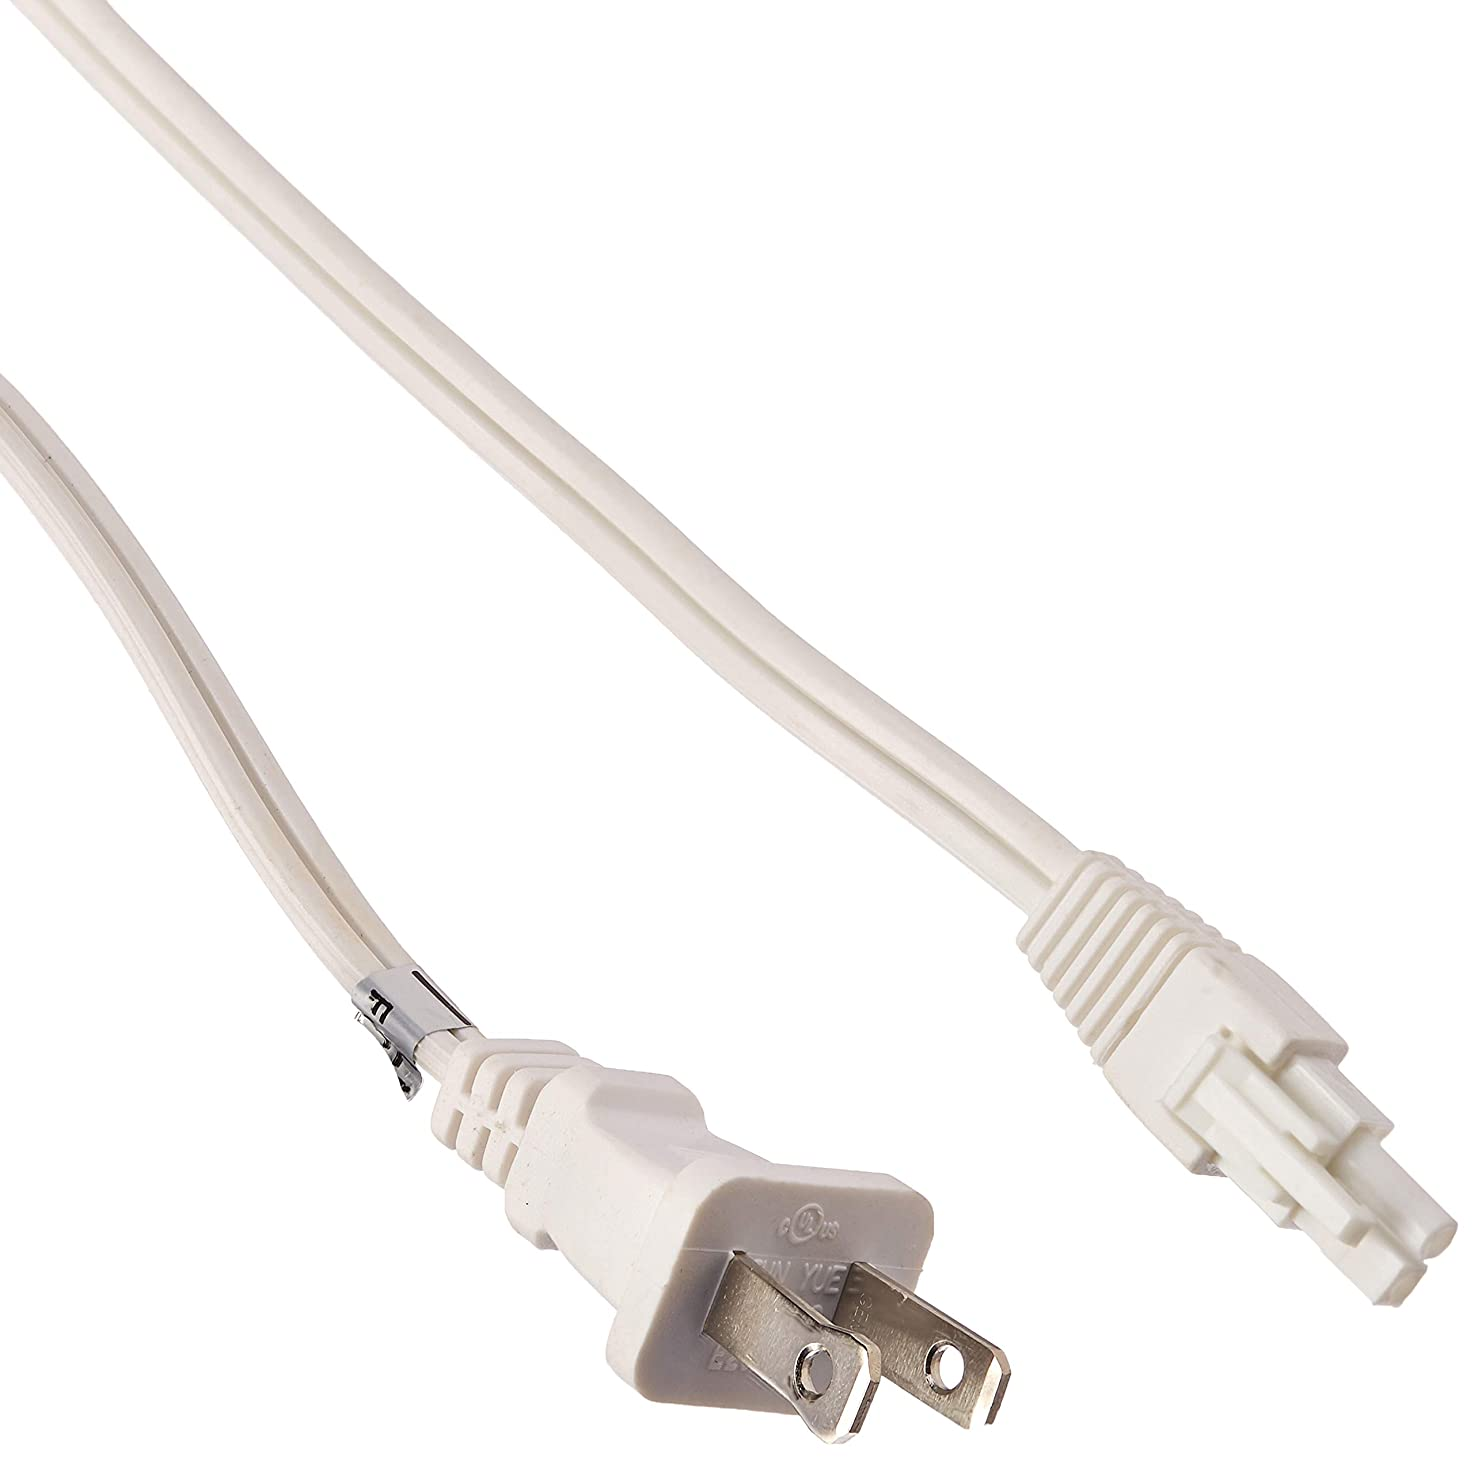 5feet Power Cord for ZX & LY fixture family - Radionic HiTech